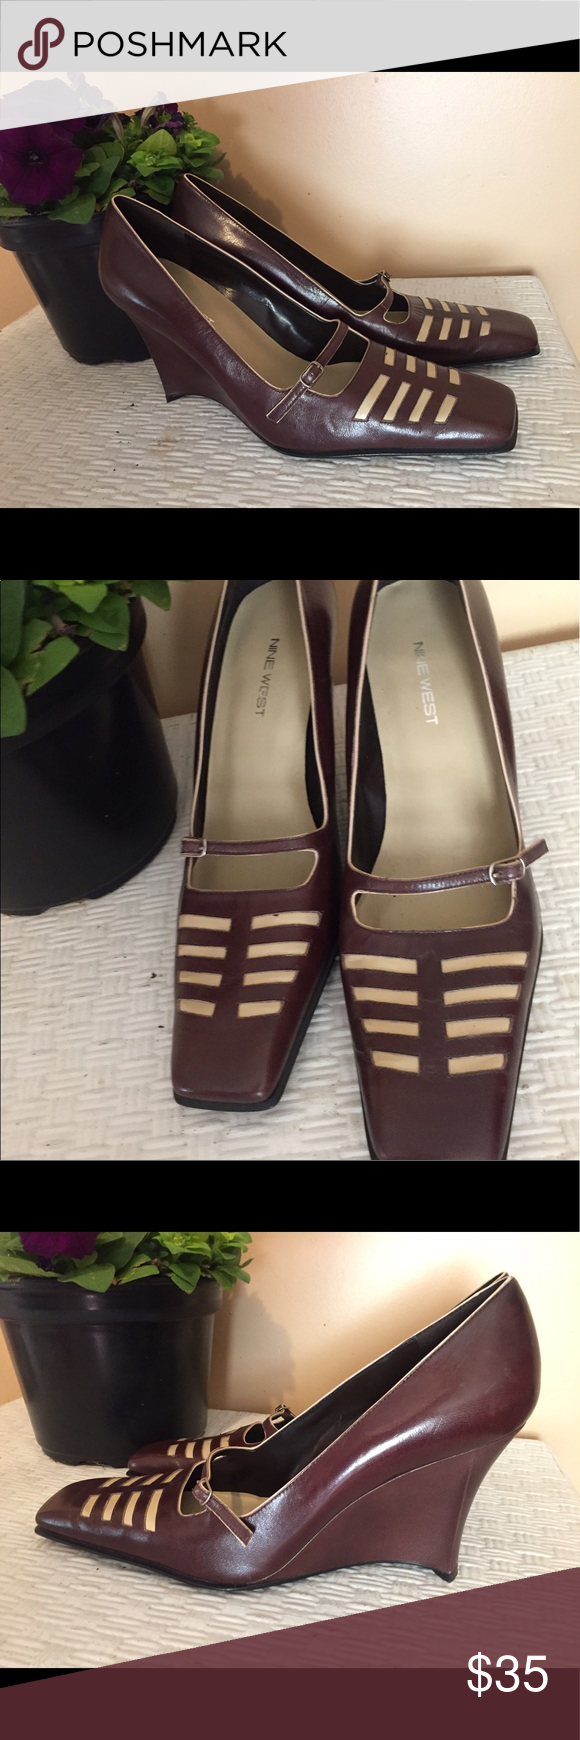 Nine West Brown wedge heels size 9M Beautiful Nine West dark brown with tan accents,  wedge heels.   Size:  9M.   Slip on with buckle.  They are in new without box condition.  Smoke free home. Nine West Shoes Heels